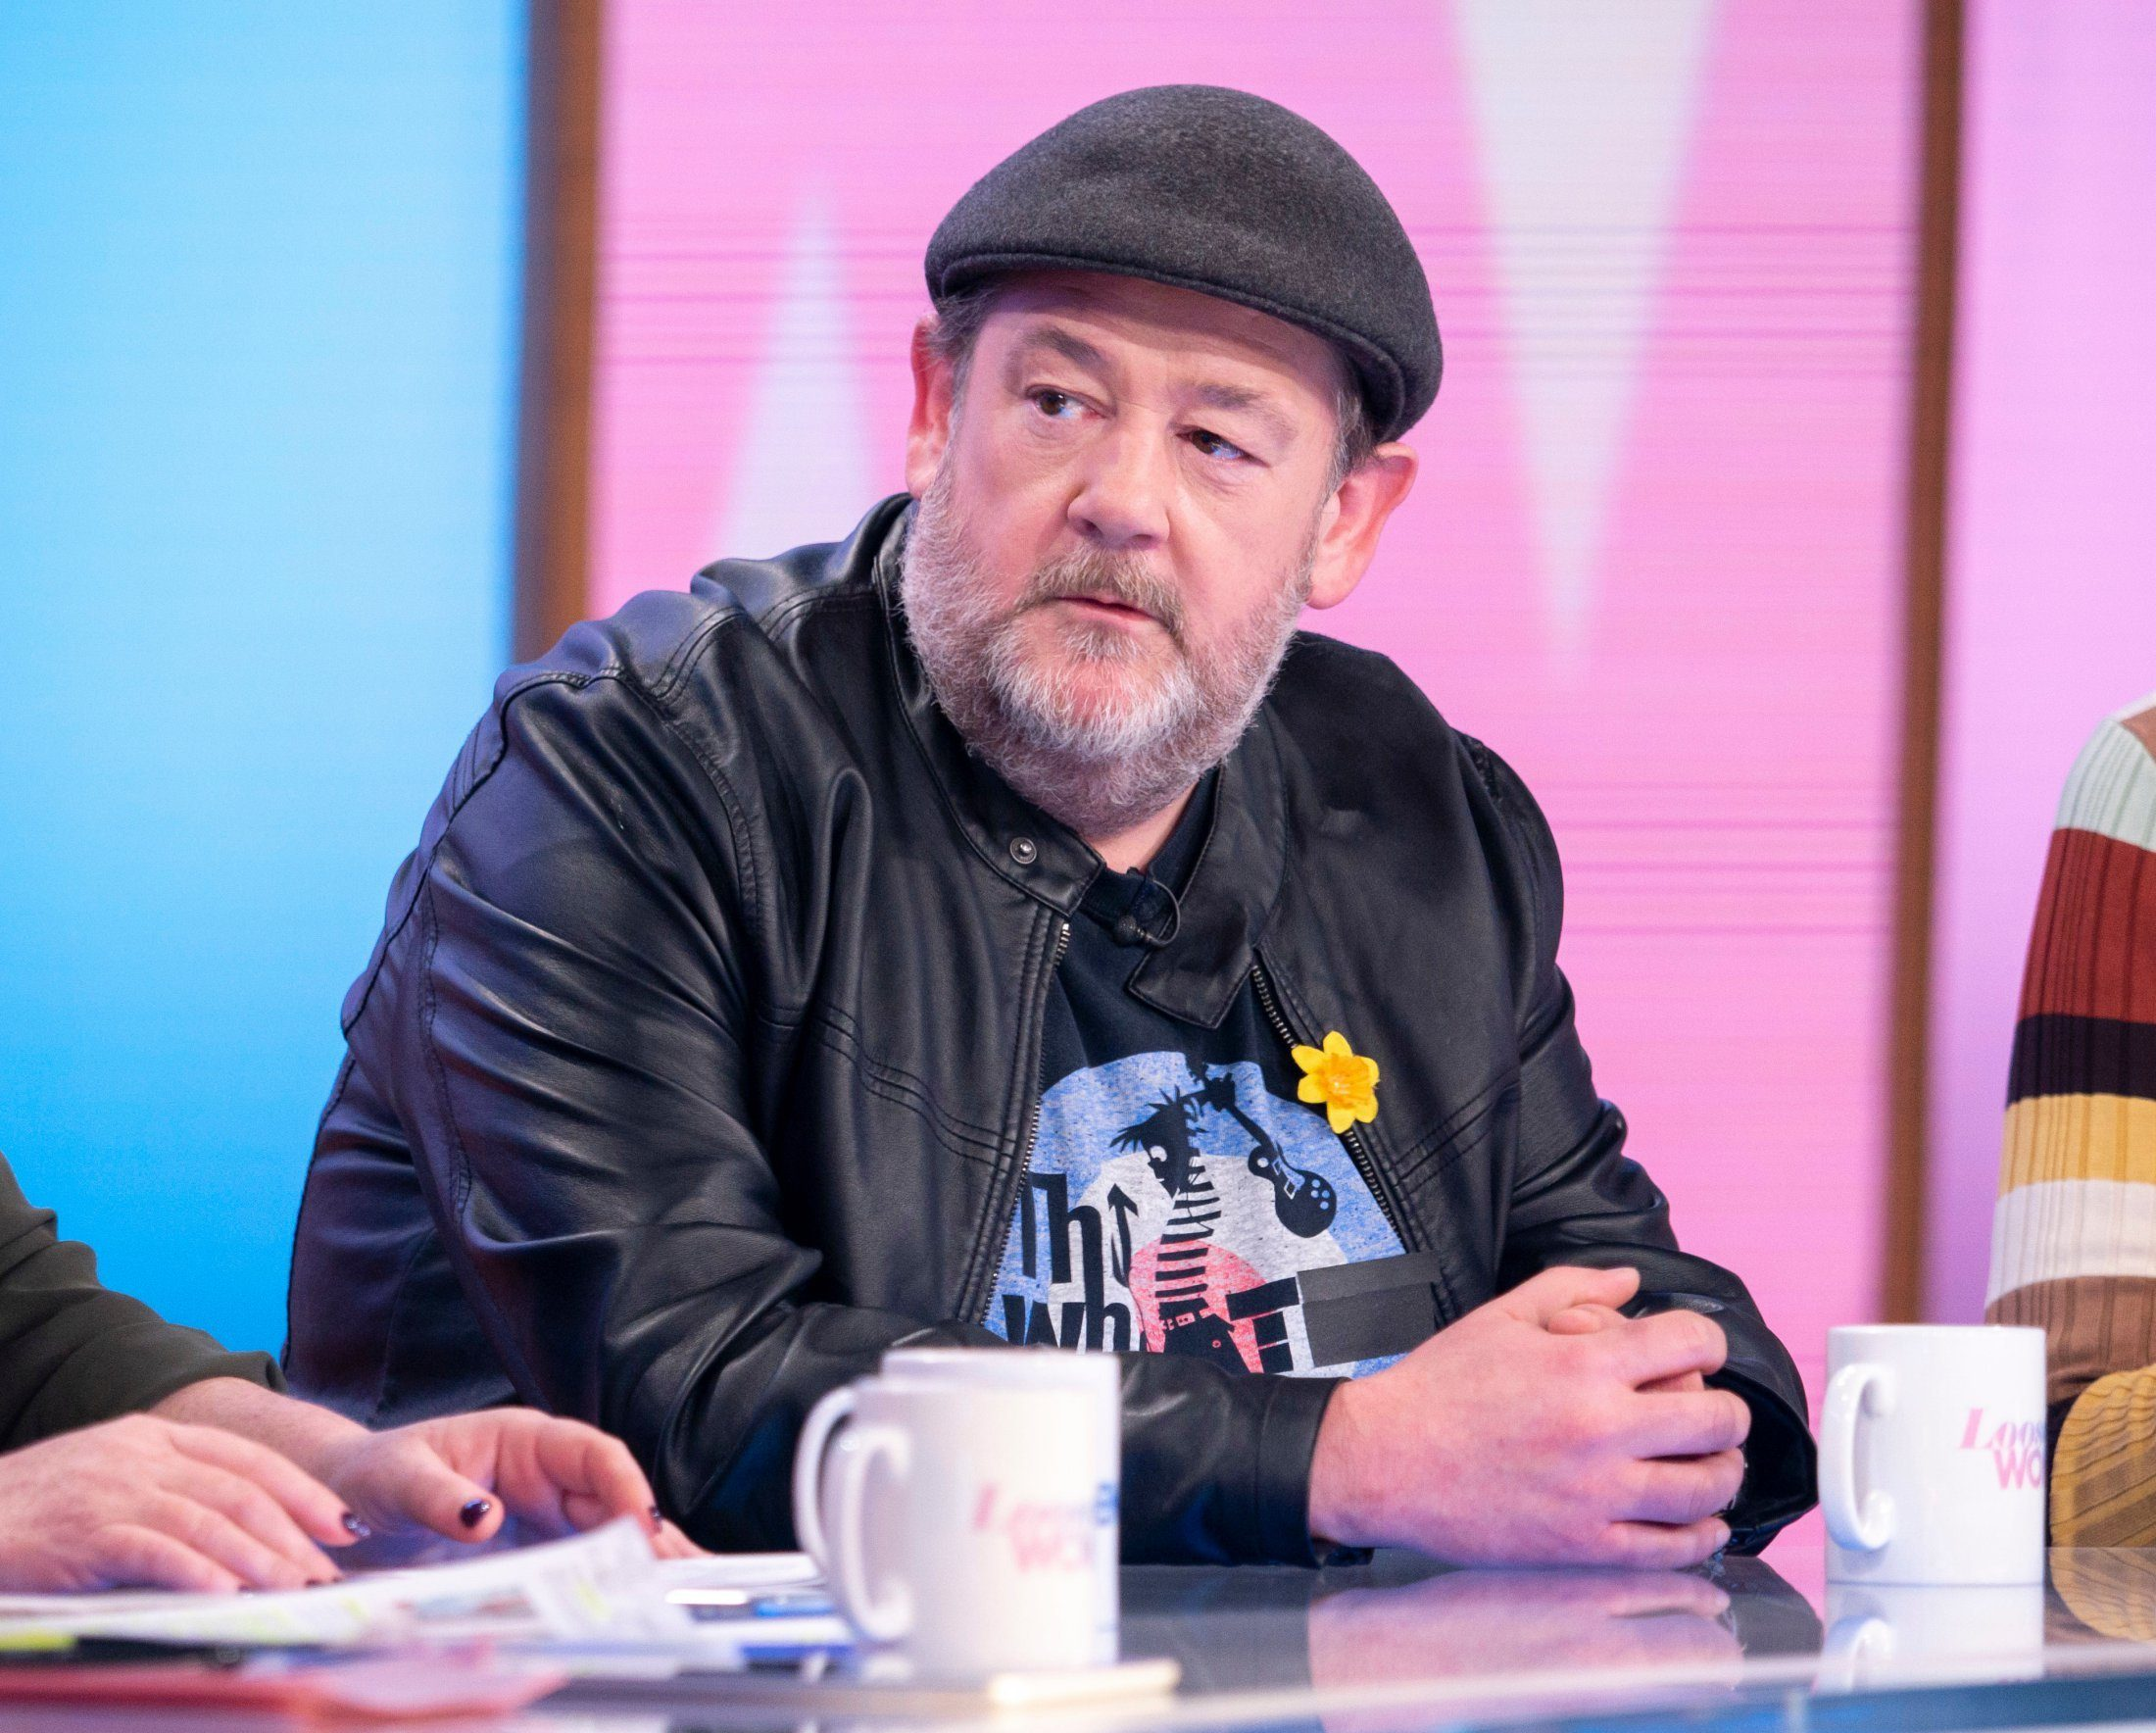 Editorial use only Mandatory Credit: Photo by S Meddle/ITV/REX (10168091cv) Johnny Vegas 'Loose Women' TV show, London, UK - 26 Mar 2019 GUEST CHAT: JOHNNY VEGAS Johnny Vegas has been a regular face on British television for over 20 years, you?ll know the comedian from his various appearances from PG tips commercials, ITV?s Benidorm to much loved British panel shows. Ahead of the release of his brand new comedy movie ?Eaten by Lions? Johnny is giving the Loose Women a visit to bring us up to speed with his latest acting role, challenges in the Bake off kitchen as well as a new Channel 4 series in the pipeline. Plus, why he feels he?s in the best shape ever!